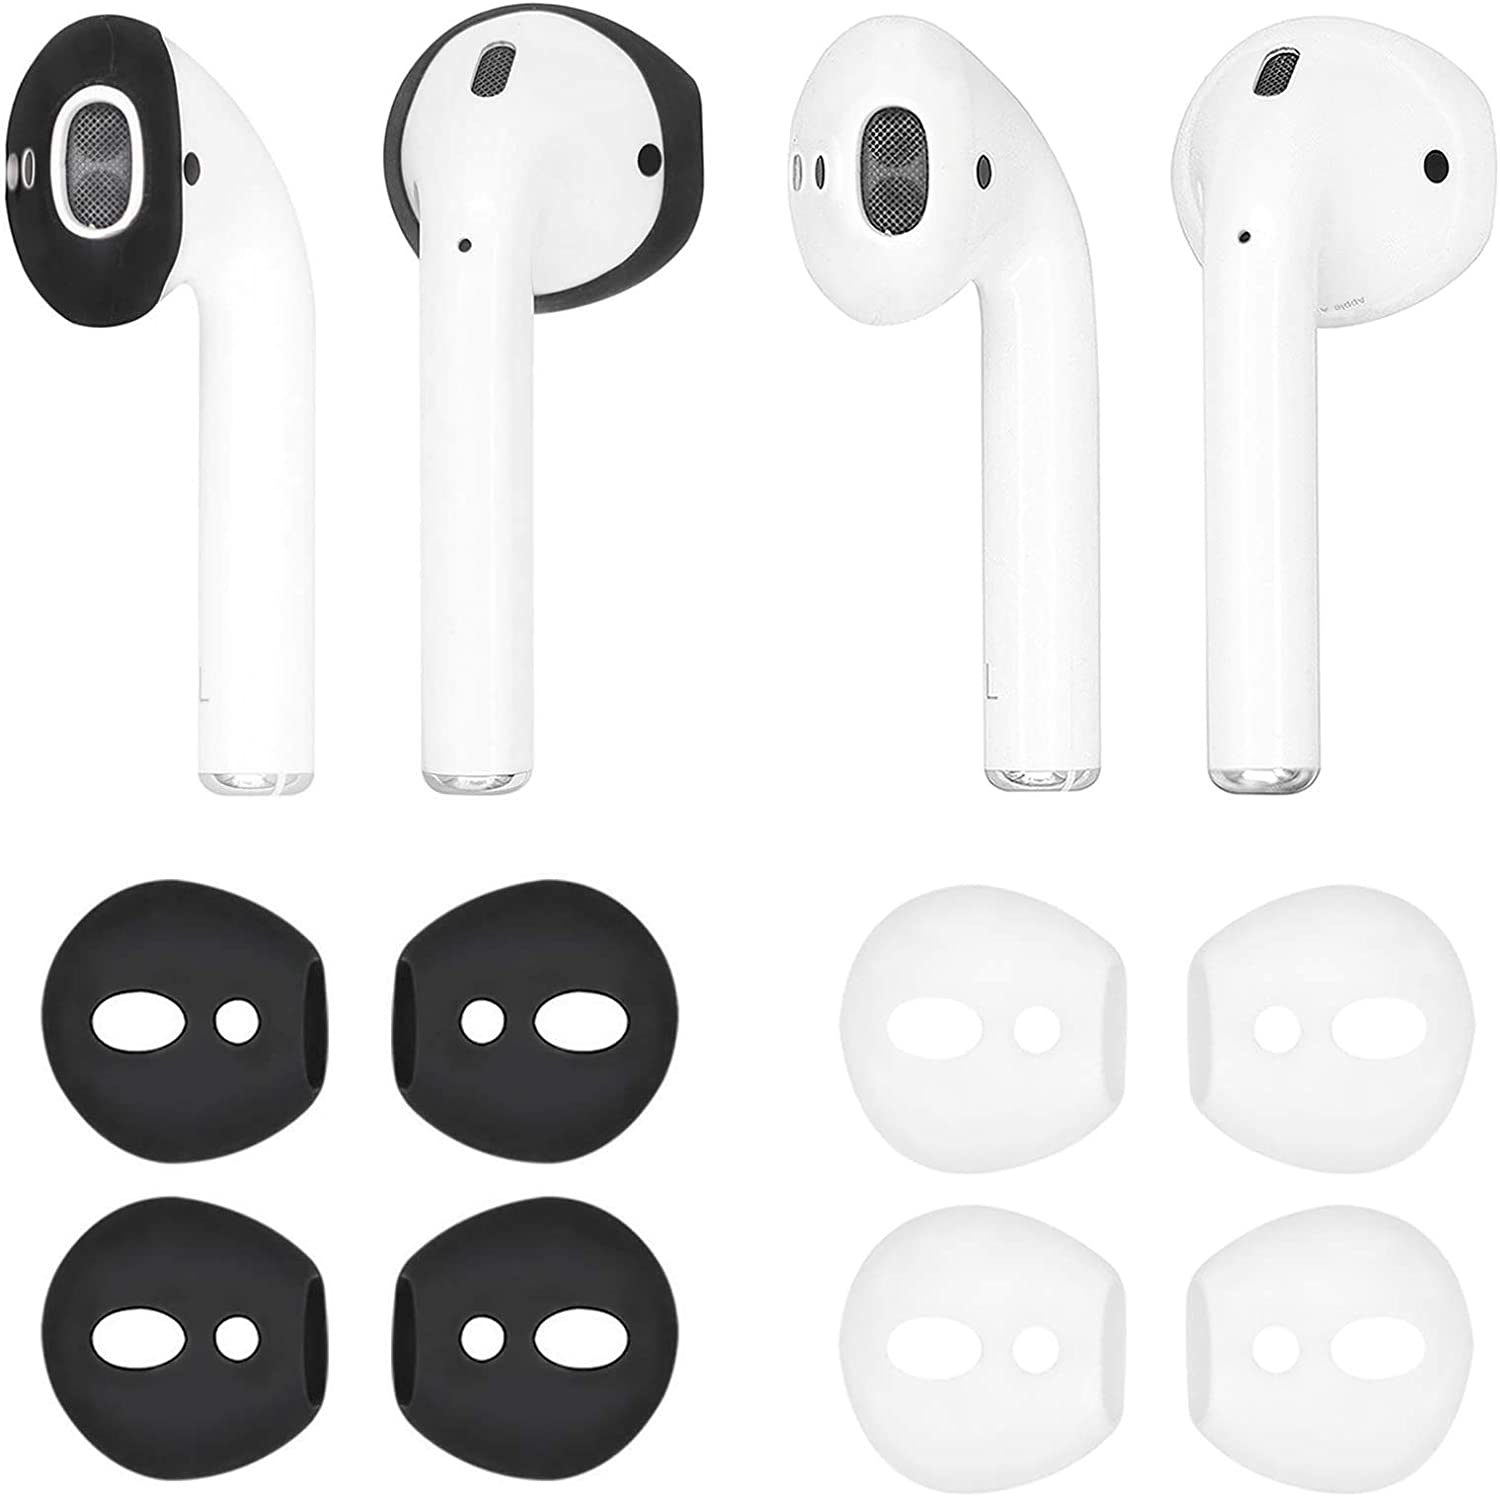 IiEXCEL Fit in Case Eartips for AirPods, 4 Pairs Replacement Super Thin Slim Silicone Earbuds Ear Tips Covers Skin Accessories for Apple AirPods 1 AirPods 2 (Fit in Charging Case) Black White